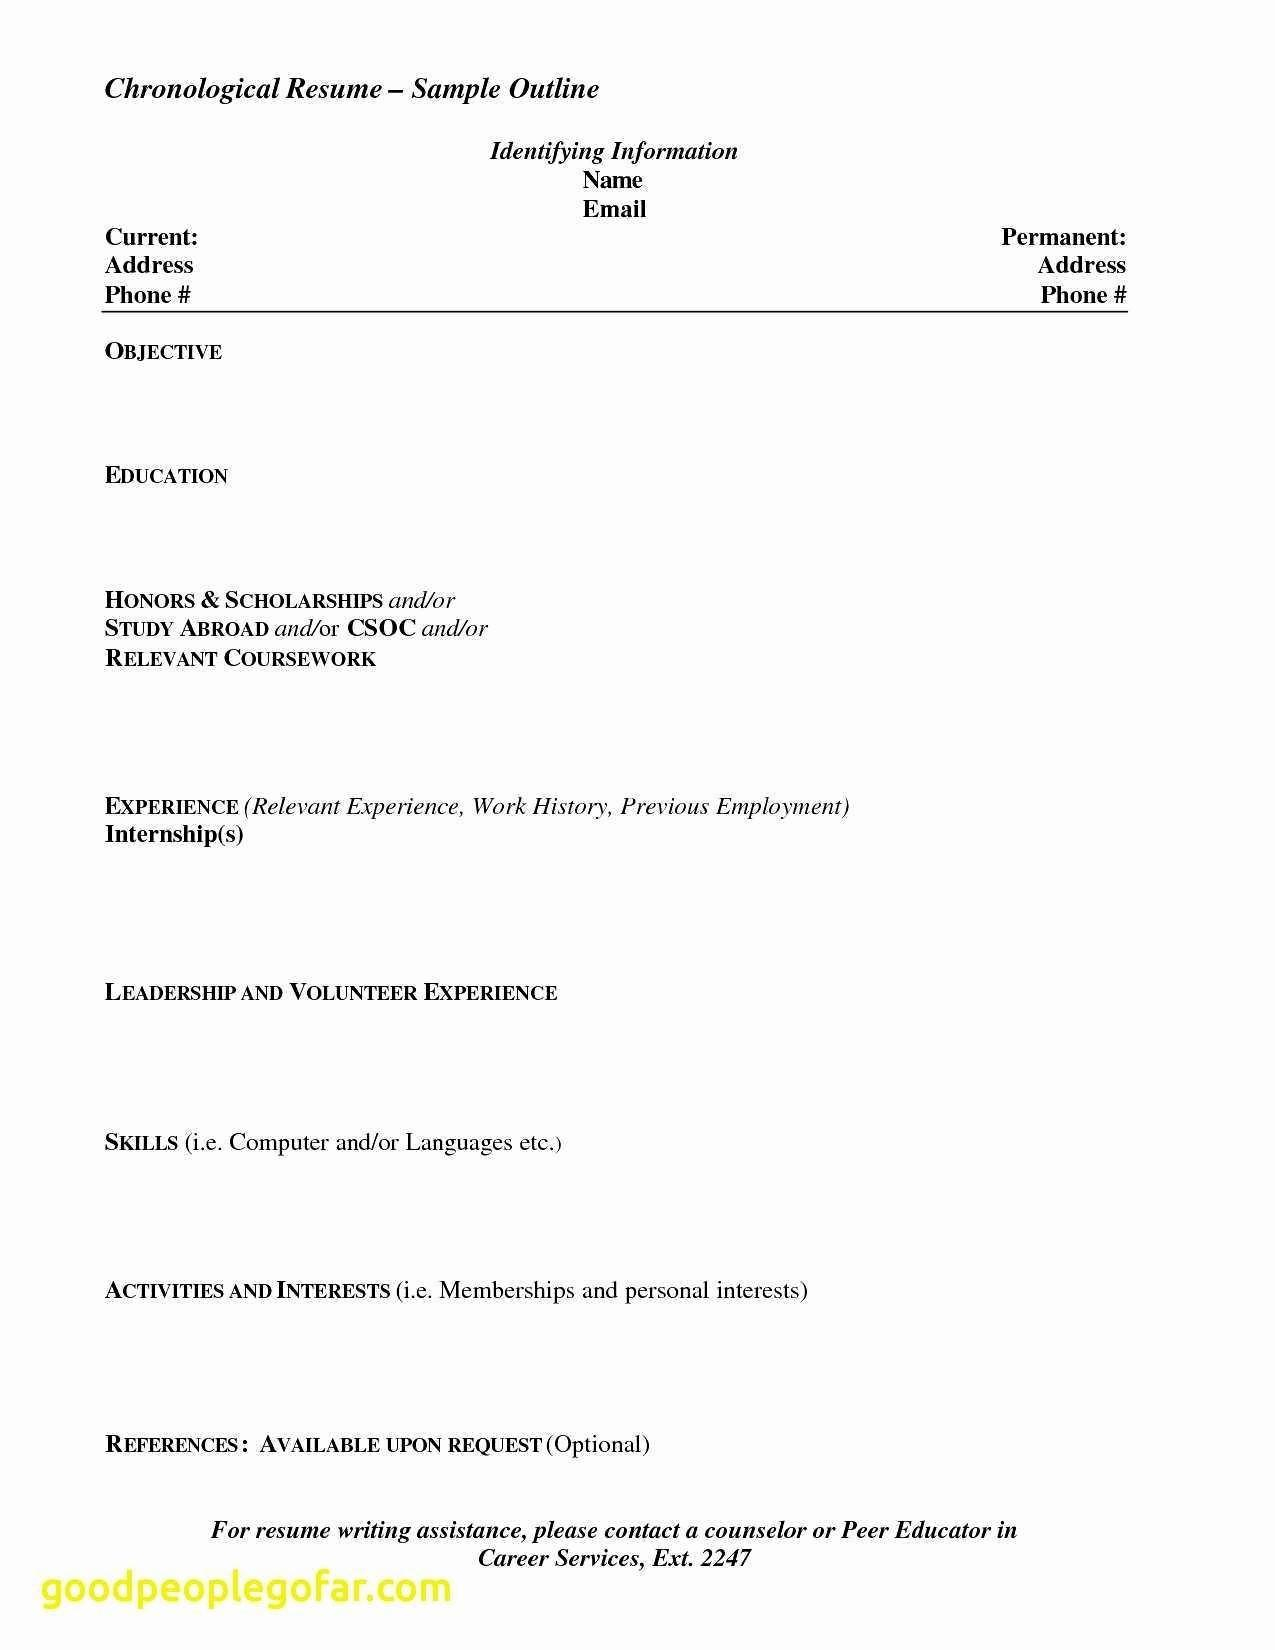 medical biller resume Collection-Sample Resume for Experienced Banking Professional Luxury Medical Biller Resume Luxury Resume Samples for Banking 10-i